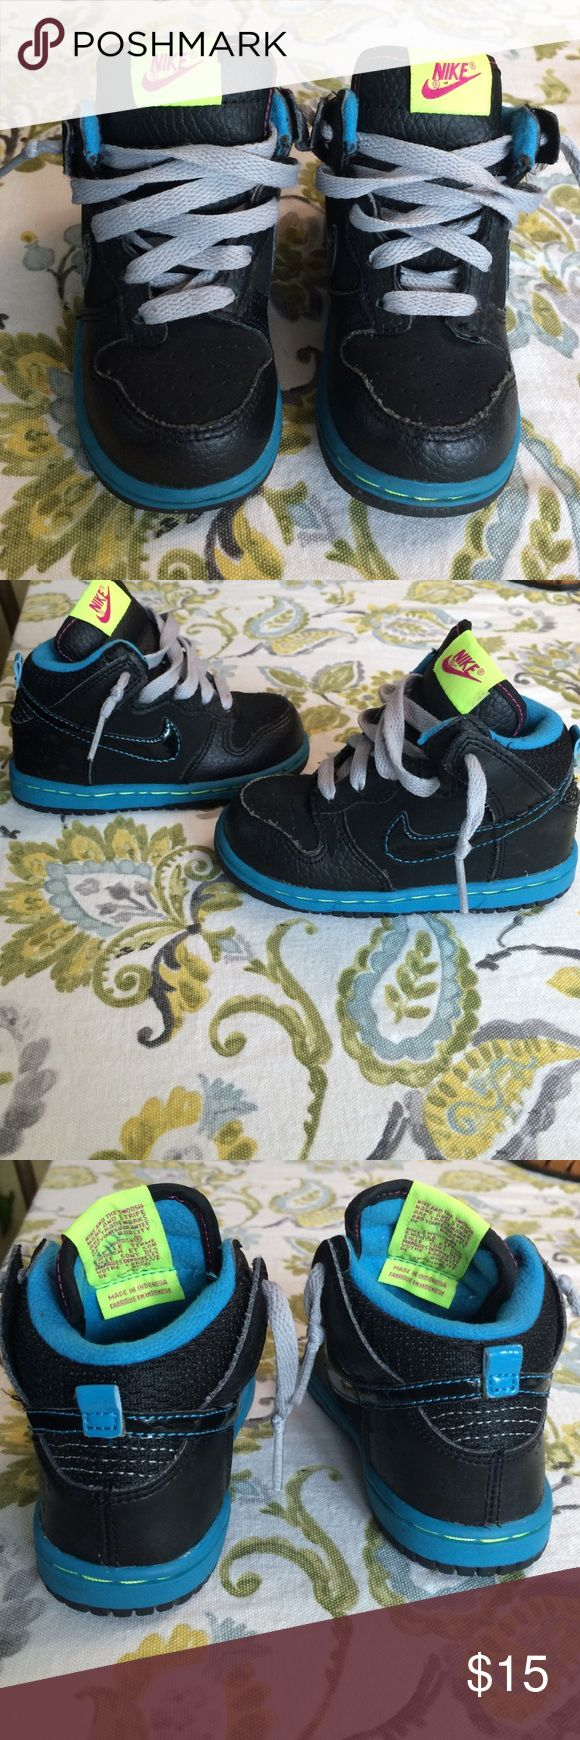 Nike high tops for children size 7C Adorable in black leather with bright blue lining and piping. From 2012 Nike line. Gray laces. Almost no wear. Soles in excellent condition. Smoke free home. Nike Shoes Sneakers